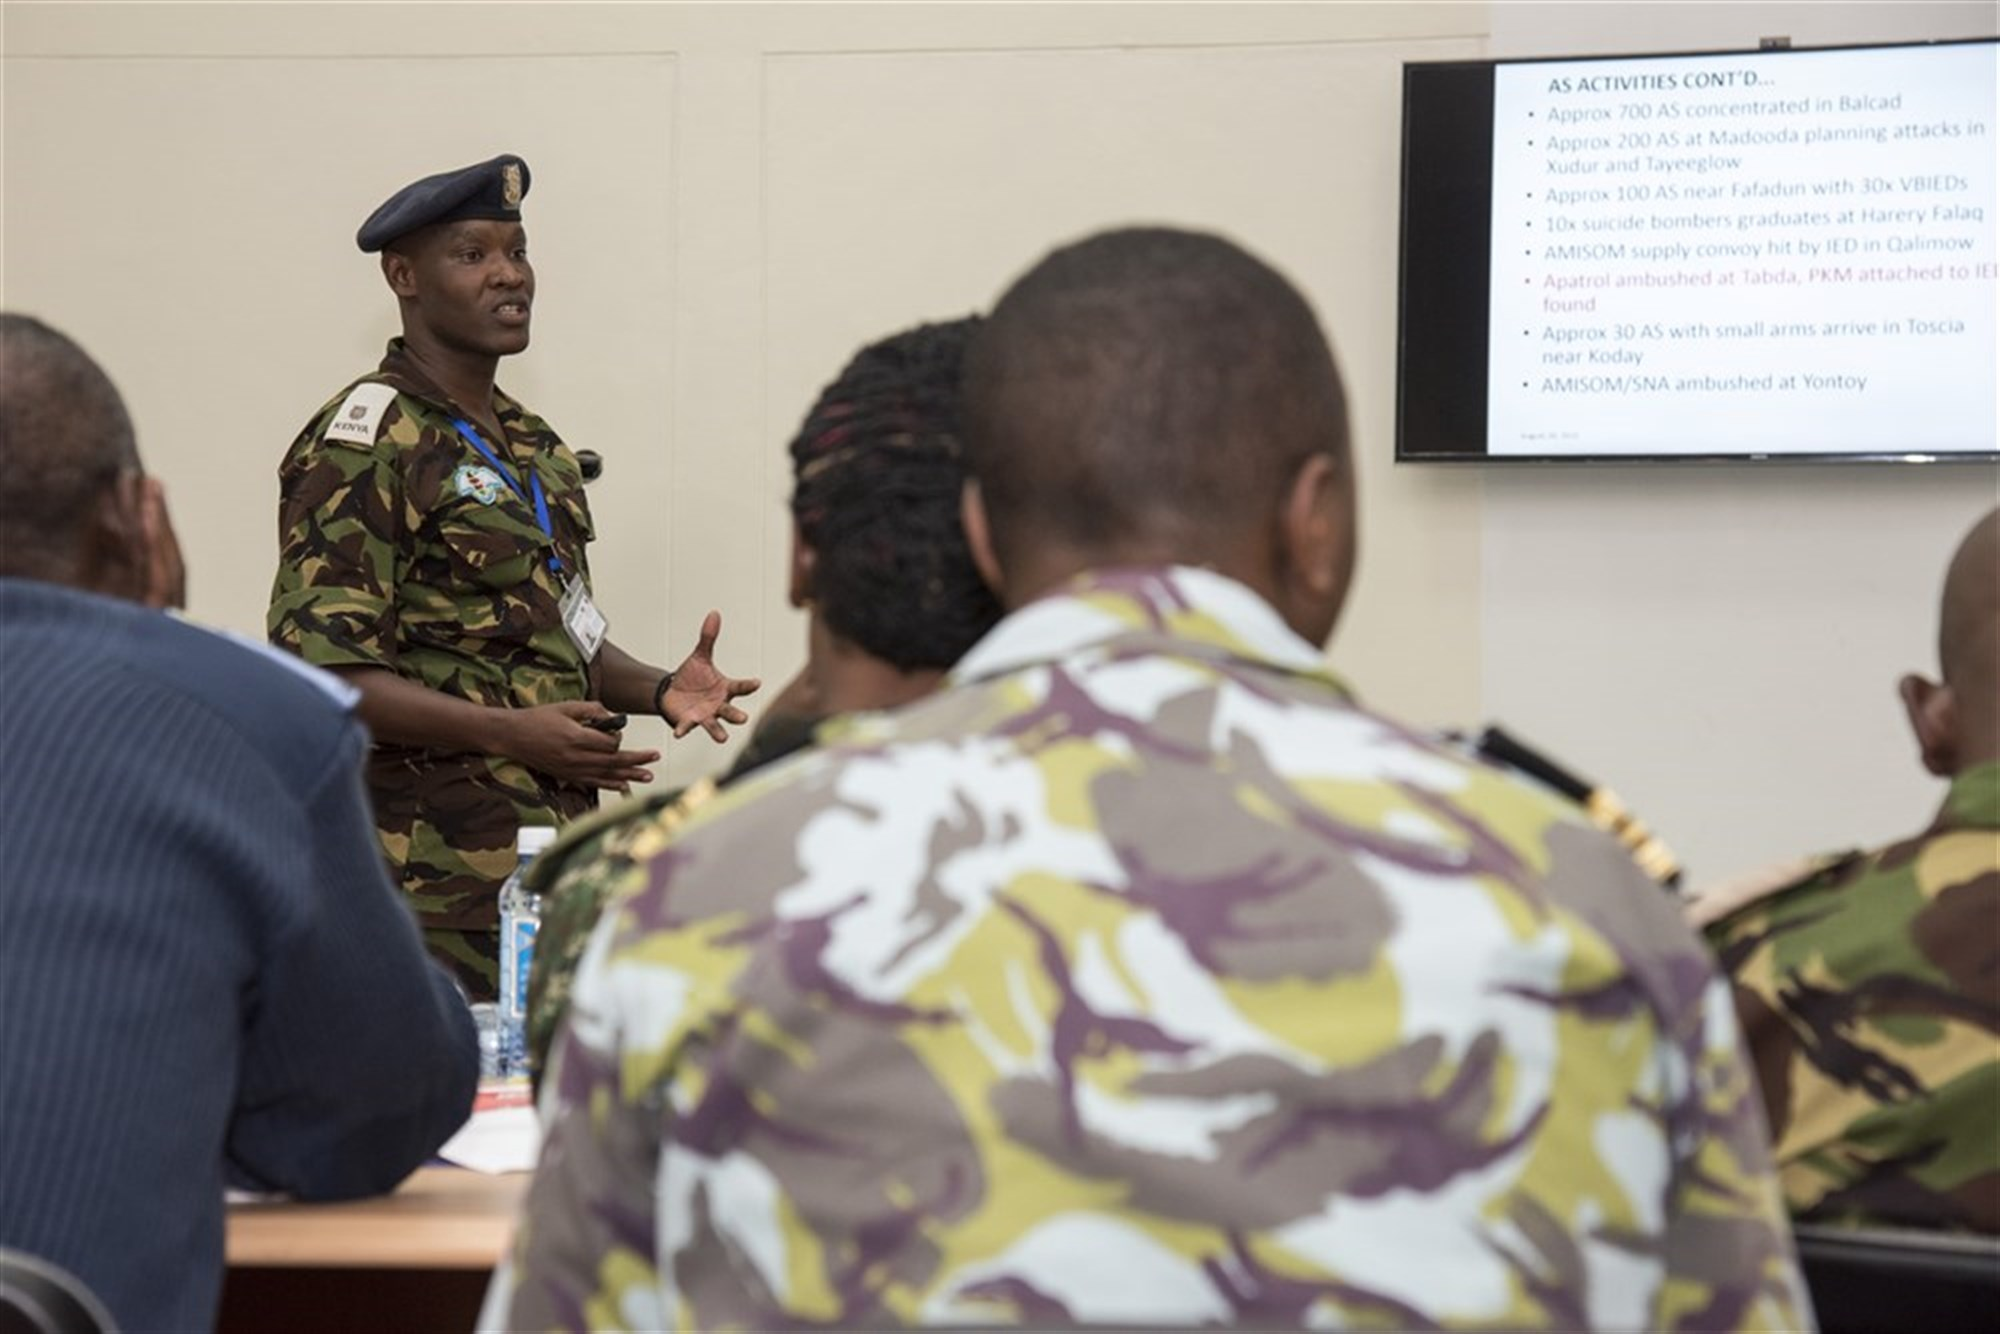 Kenyan Defense Force Maj. David Nzuve, Africa Contingency Operations Training & Assistance (ACOTA) African Union Mission in Somalia (AMISOM) Force Headquarters training course attendee, briefs command staff officers during a culmination exercise at the International Peace Support Training Center in Nairobi, Kenya, Aug. 26, 2015. The course was designed to prepare staff officers from AMISOM contributing countries for possible assignment to AMISOM Force Headquarters as a part of the command staff there, and as staff members the officers were asked to prepare daily briefings regarding the day's events. (U.S. Air Force photo by Staff Sgt. Nathan Maysonet/released)